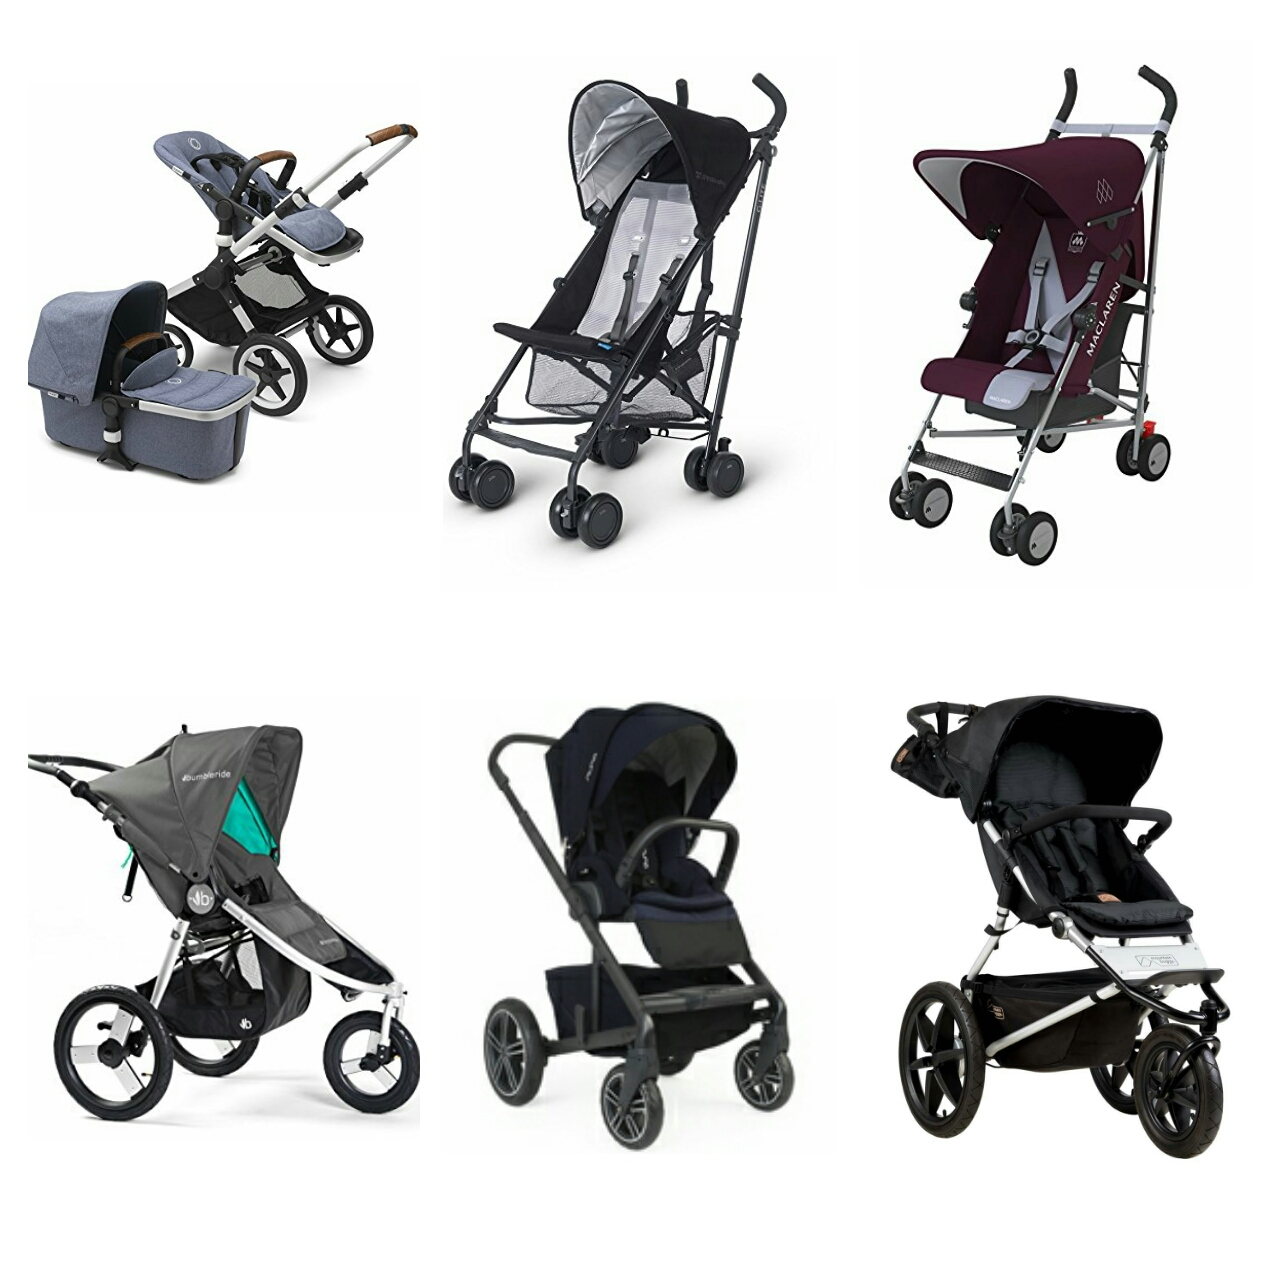 Zobo Travel System Weather Shield Non Toxic Strollers Without Flame Retardant Chemicals